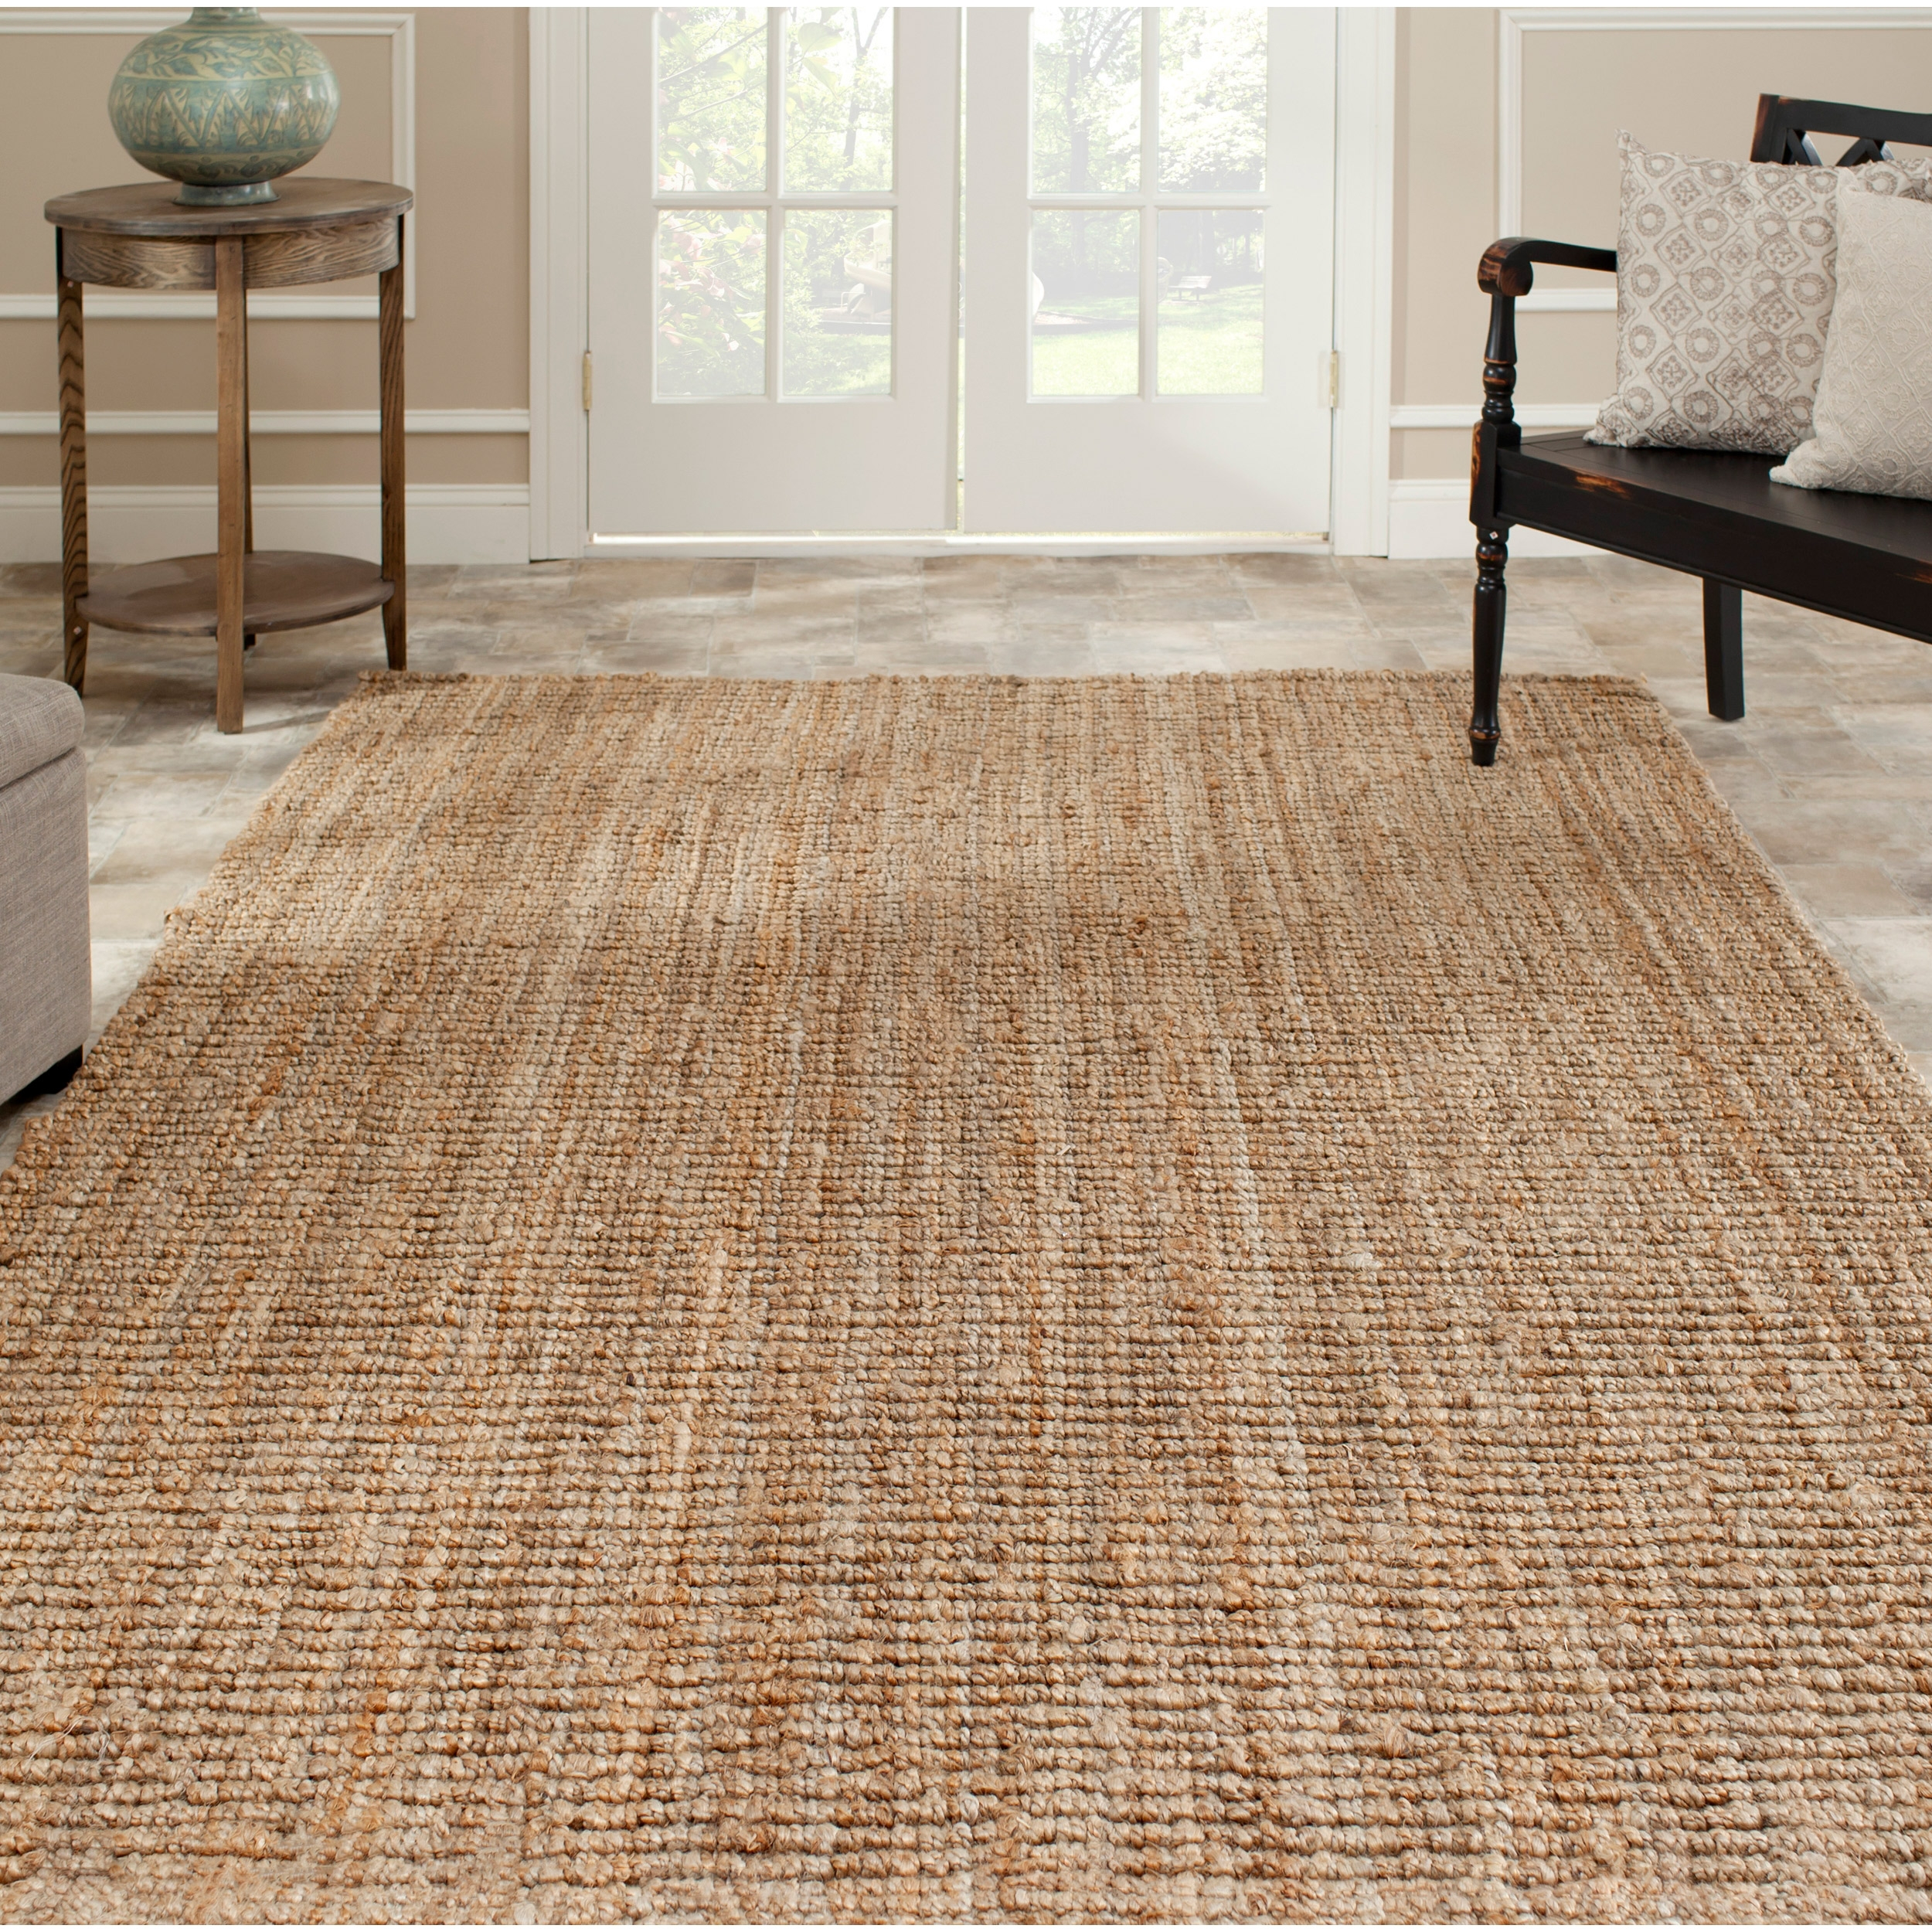 Rugs Cheap Area Rugs 8×10 Under 100 8×10 Area Rug 8×10 Wool Rugs Within Natural Wool Area Rugs (#8 of 15)